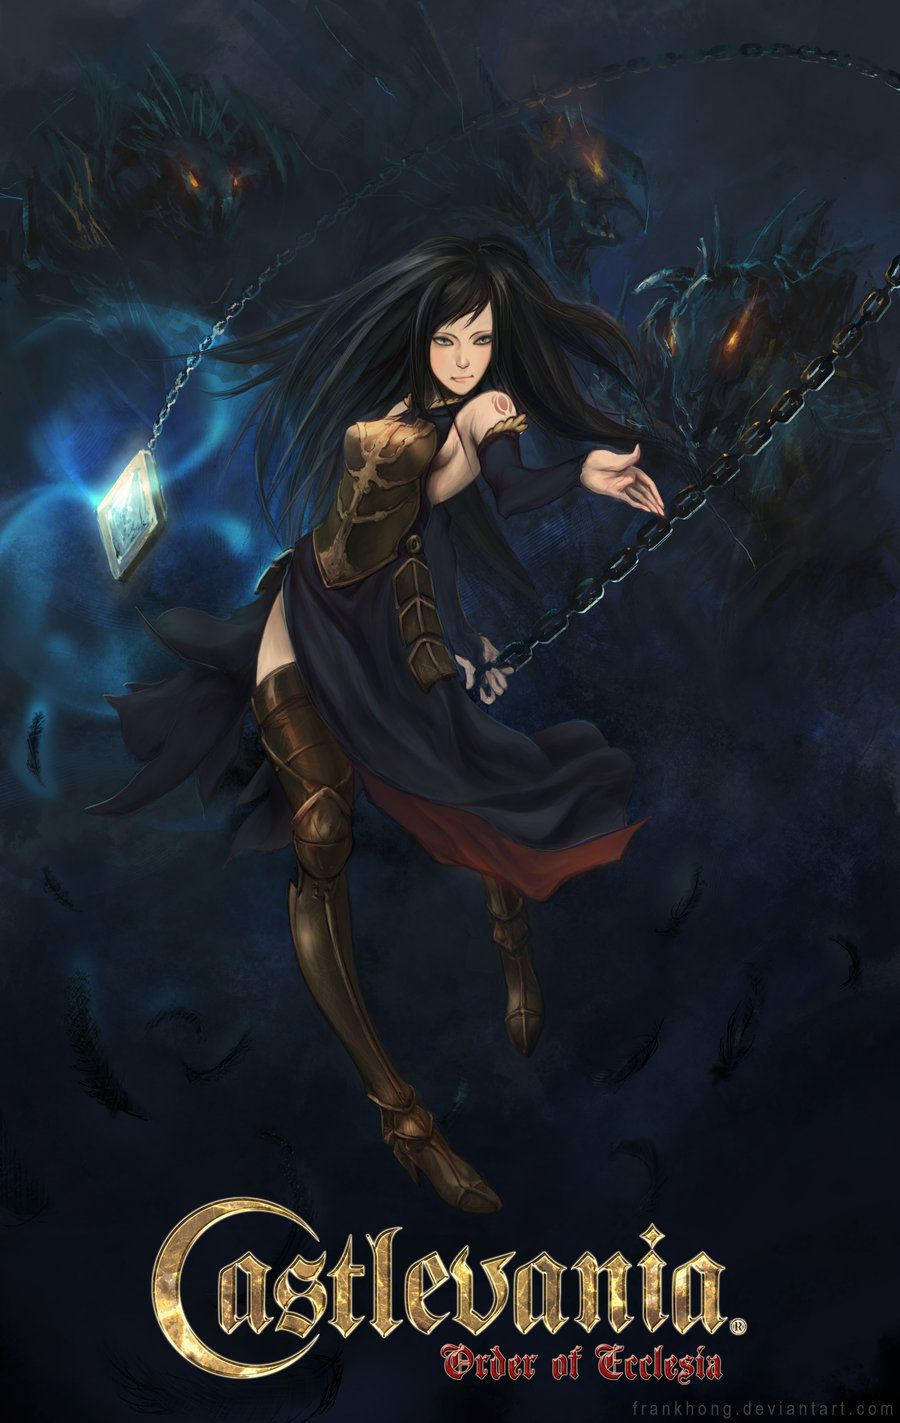 Shanoa Castlevania Order Of Ecclesia Fantasy Female Warrior